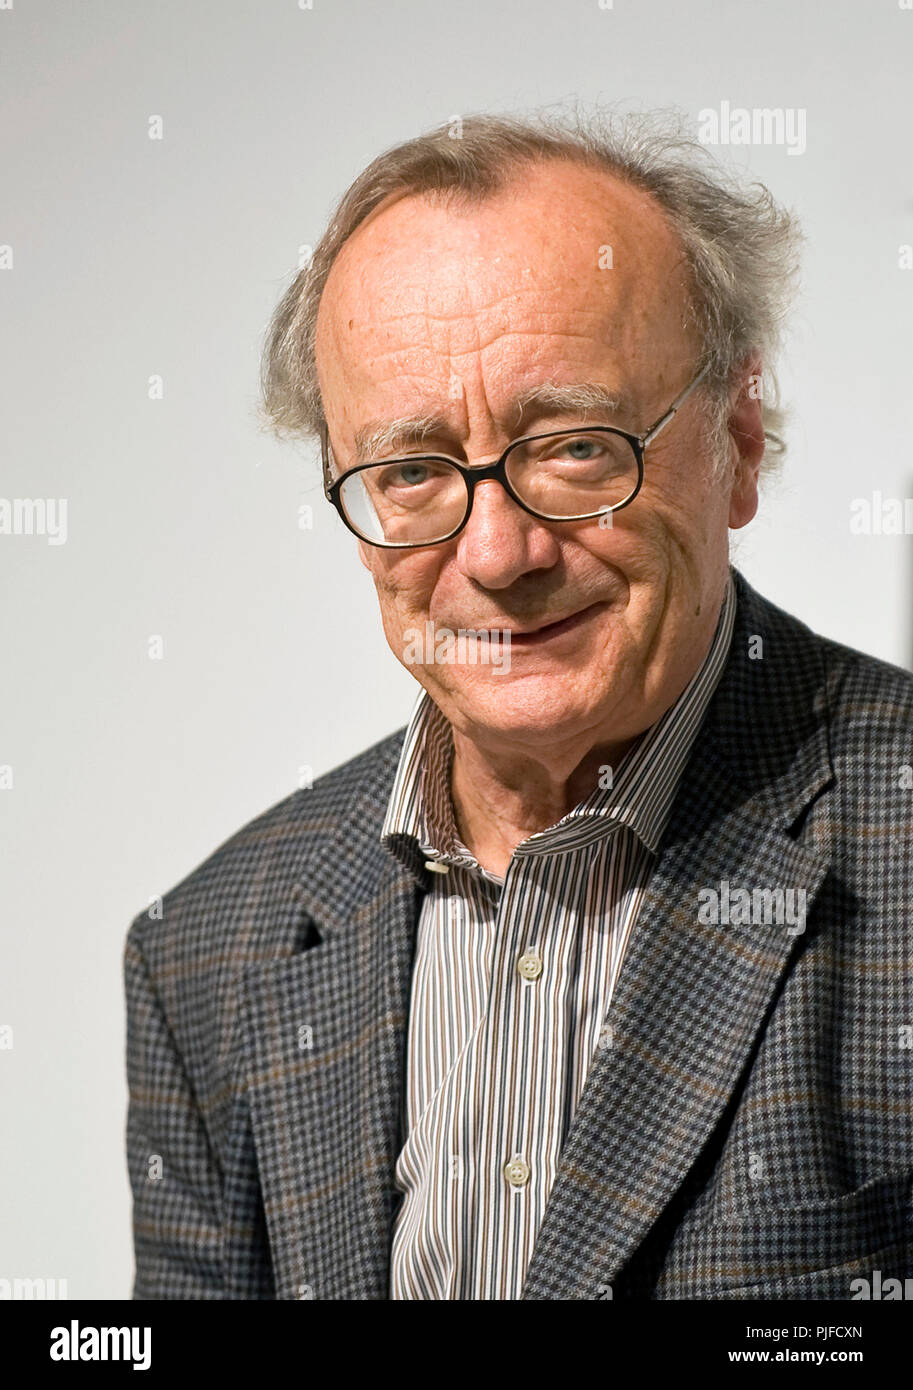 Austrian pianist Alfred Brendel, who resides in the U.K., attends a media event formally announcing the winners of the Praemium Imperiale, a global ar - Stock Image